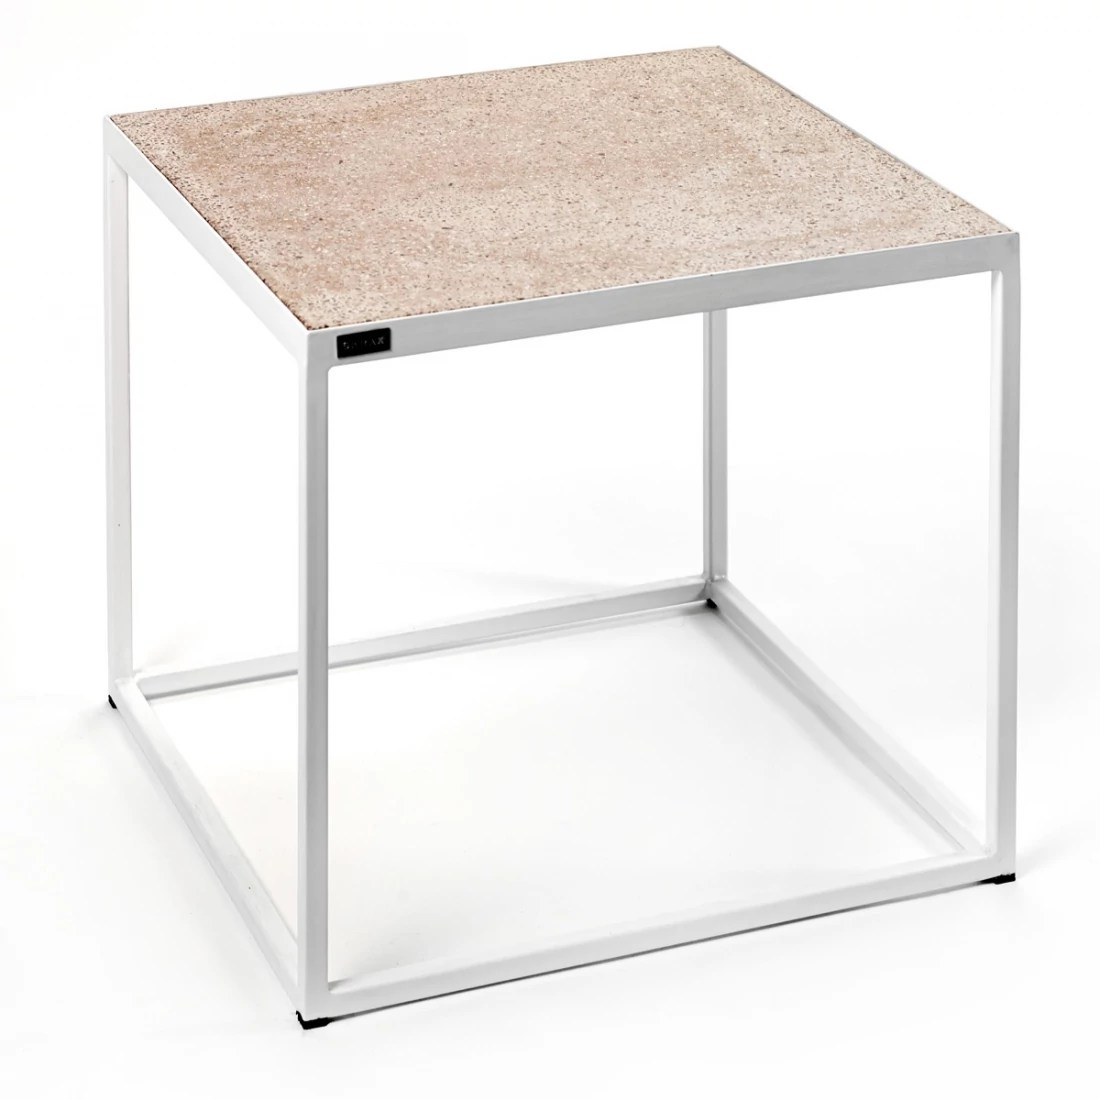 Table Basse Appoint Table Basse D Appoint Frame Serax Zendart Design